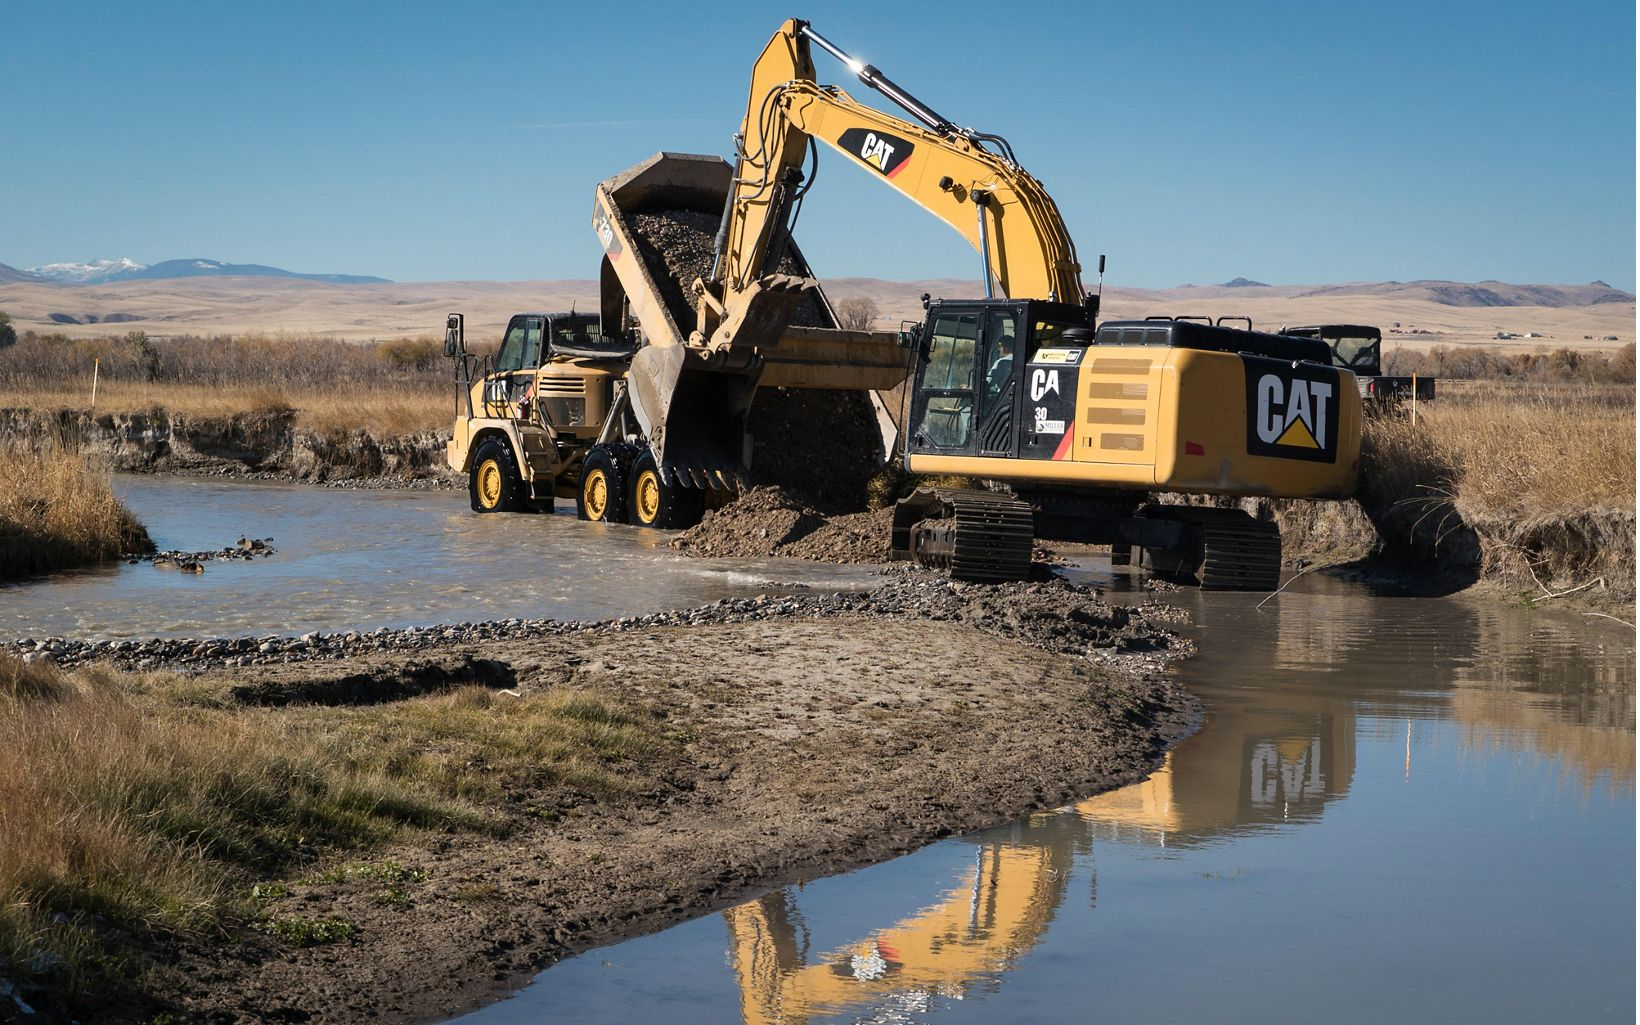 Heavy equipment was used to raise the level of the Ruby River's deeply incised channel.